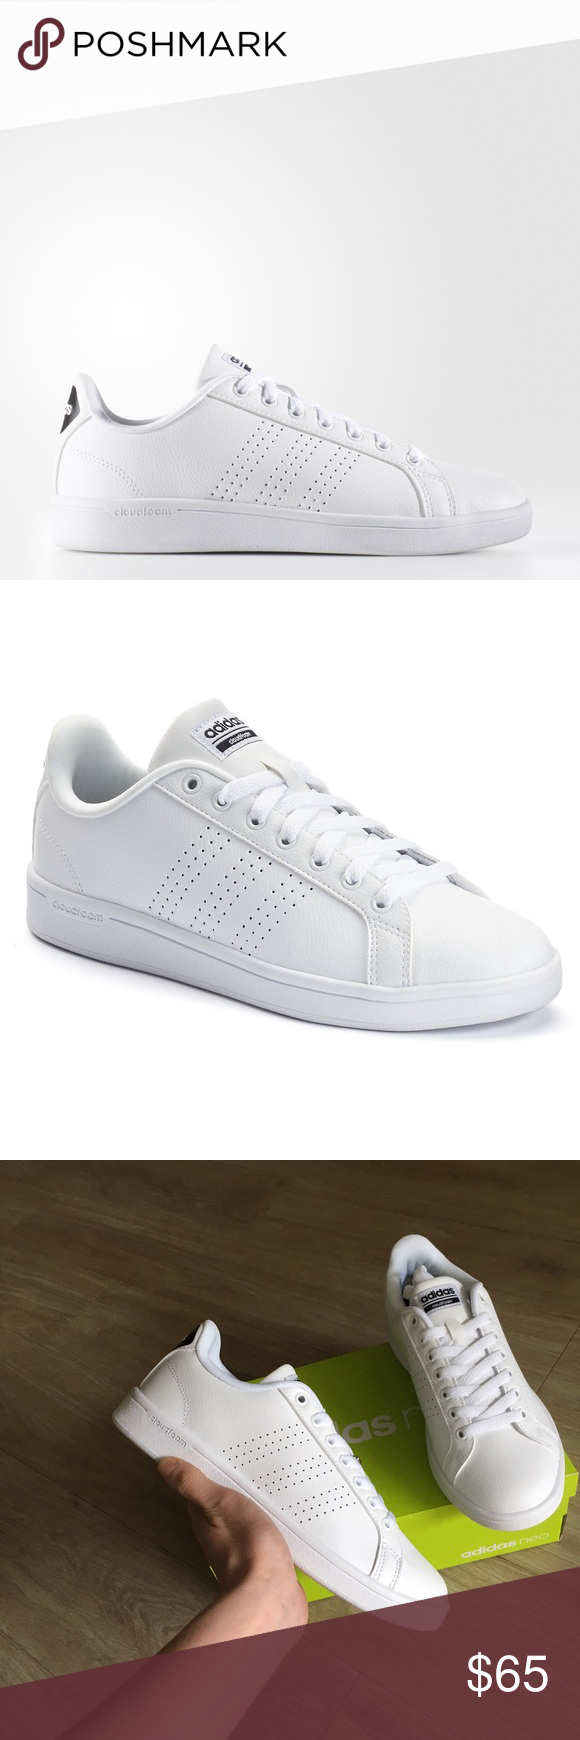 adidas neo advantage clean sneakers with upper perforations